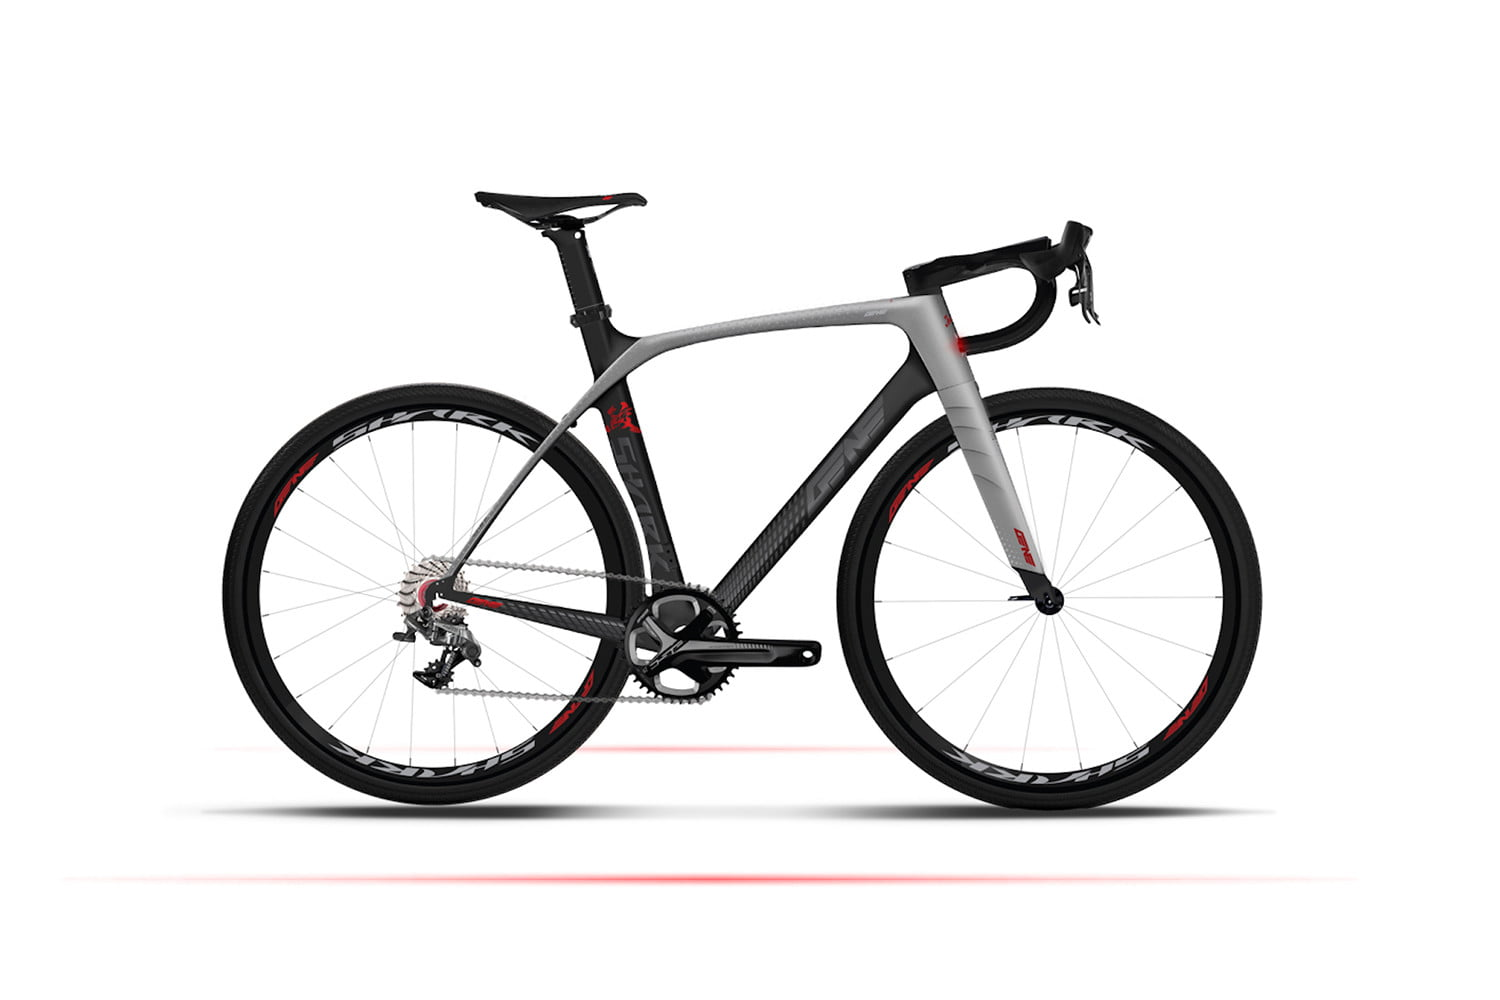 CES: LeEco to Launch Its Android-Powered Smart Bikes in Q2